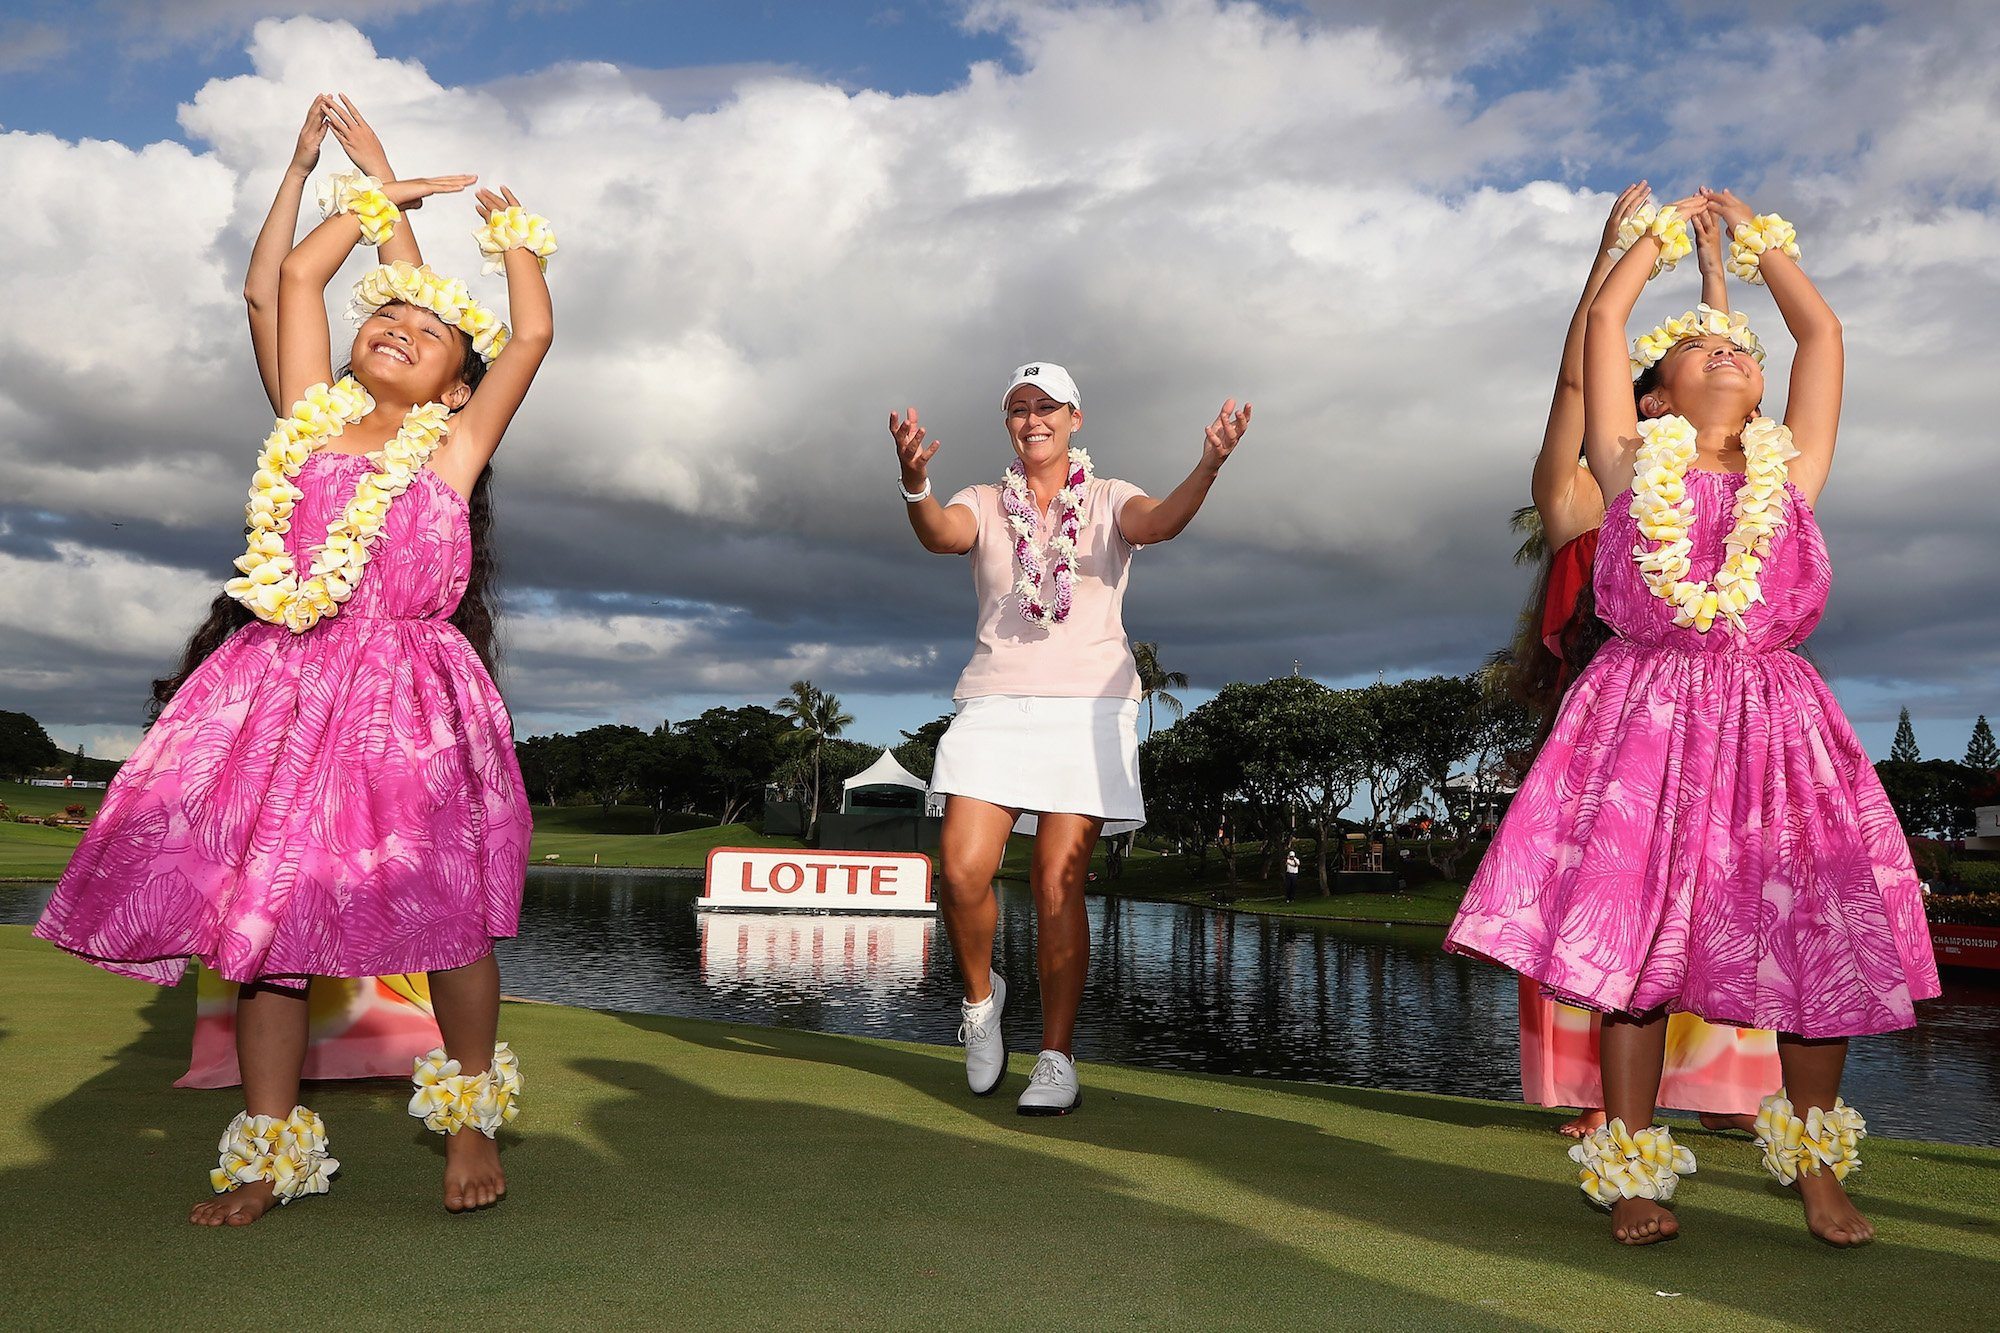 Hula time!  Thank you @LPGALOTTE for another great event! Looking forward to the next 3 years! Mahalo! https://t.co/xXg3j26Hjp